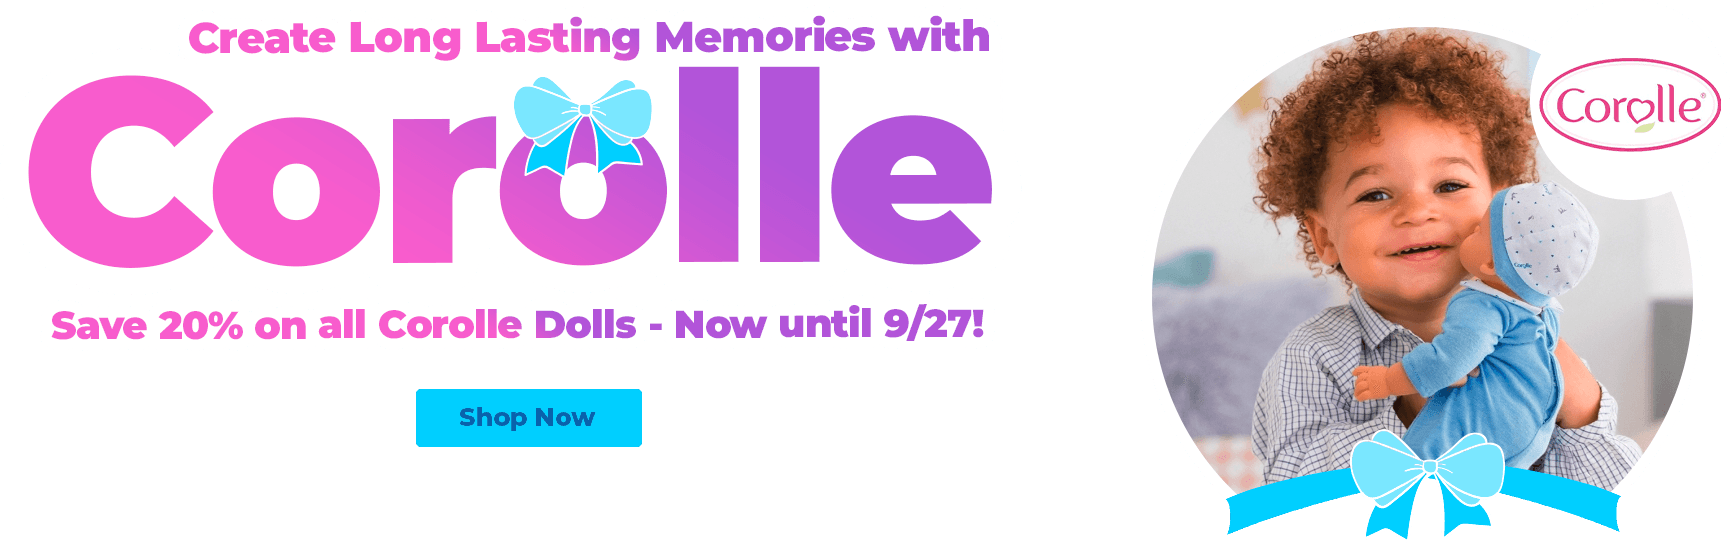 Save 20% On All Corolle Dolls - Limited Time Only at JR Toy Canada